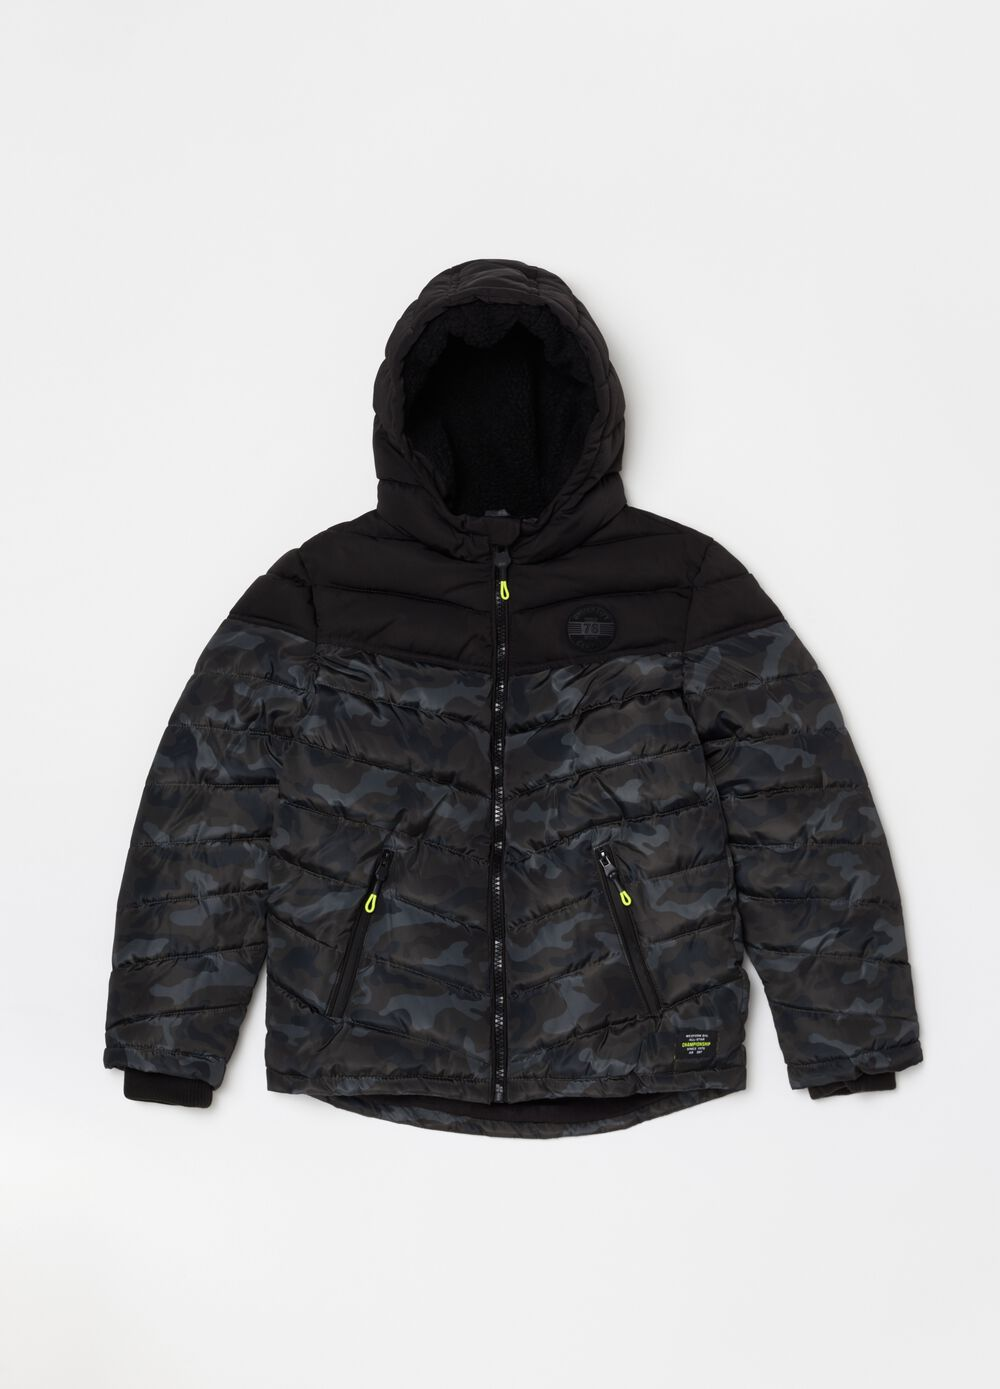 Padded and quilted camouflage jacket